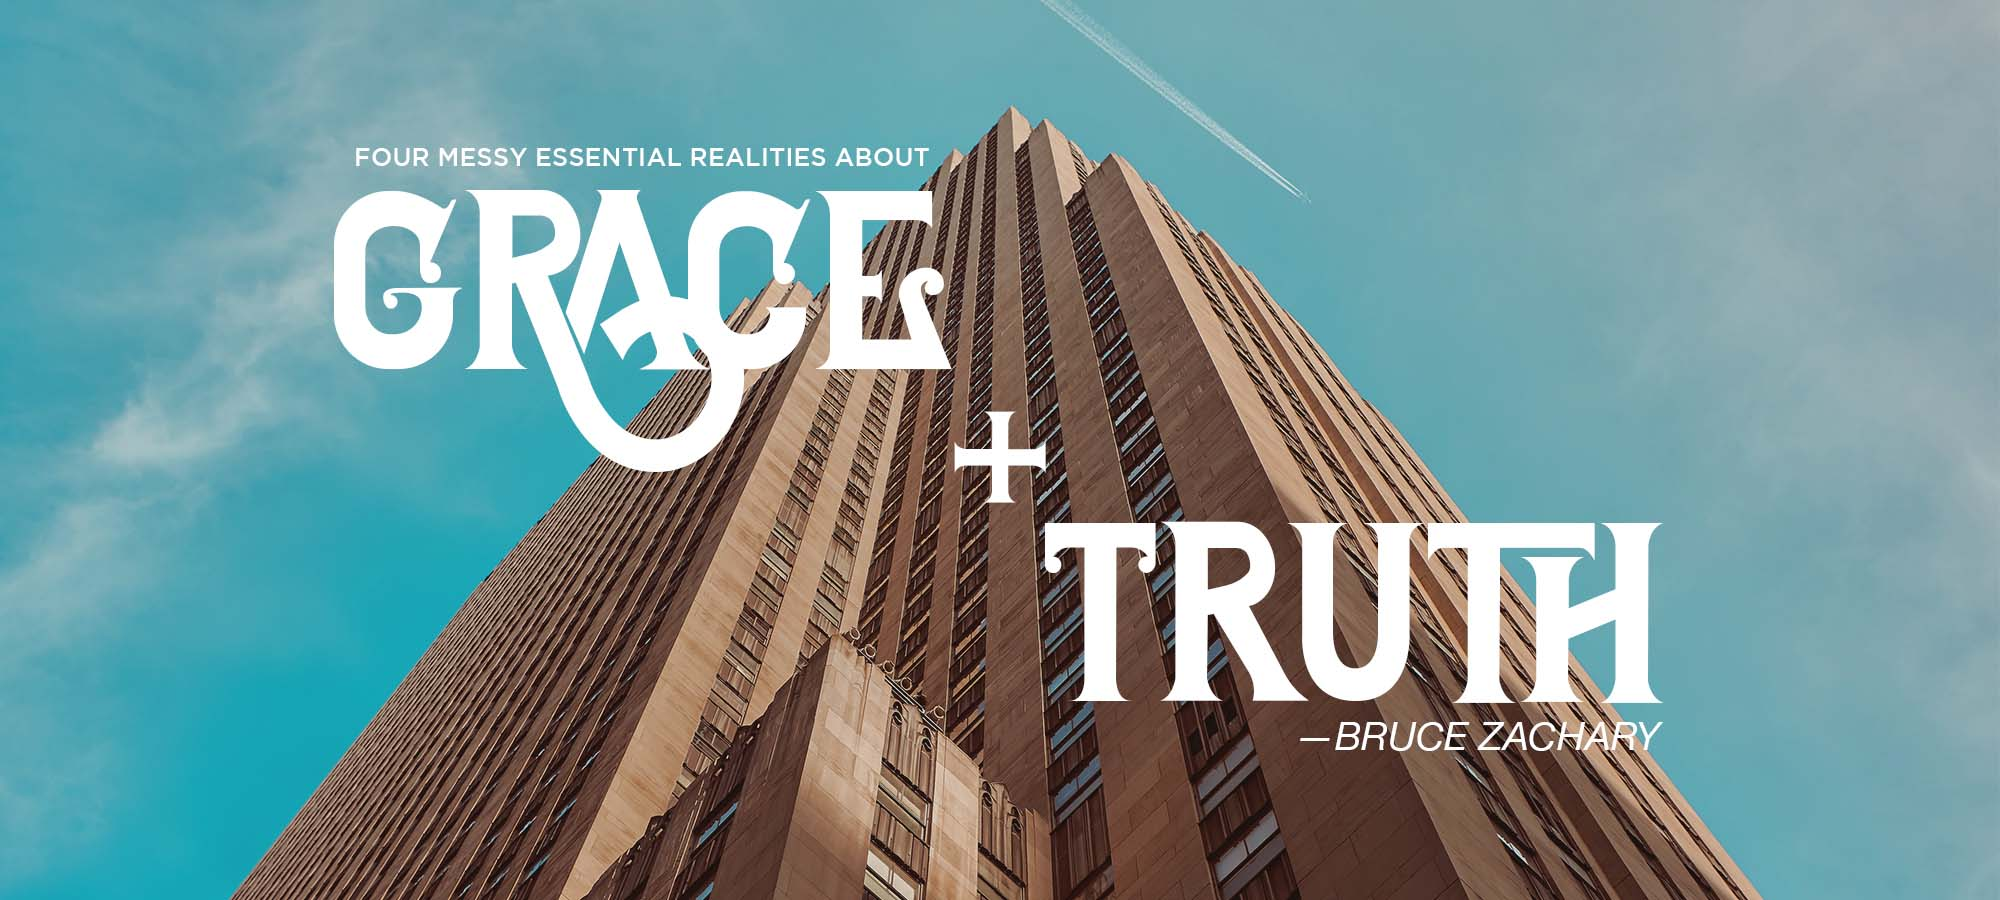 Four Messy Essential Realities About Grace and Truth